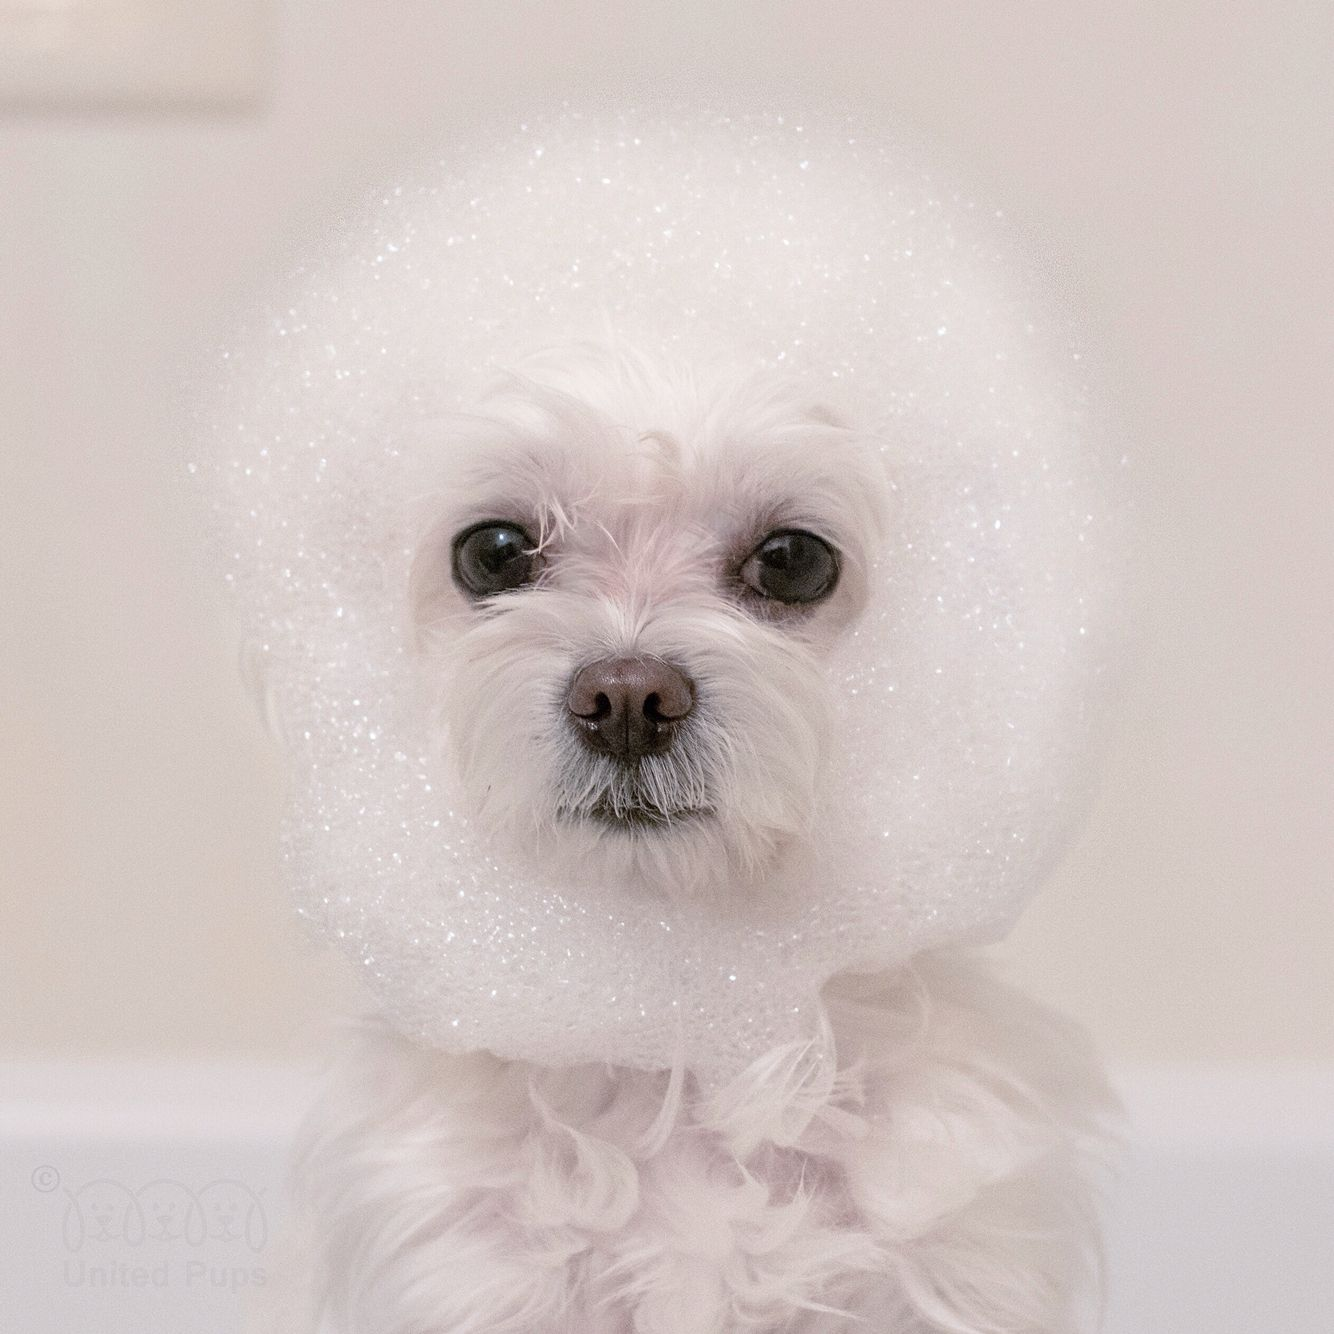 Is This What Happens When You Take A Bubble Bath I Look Like A